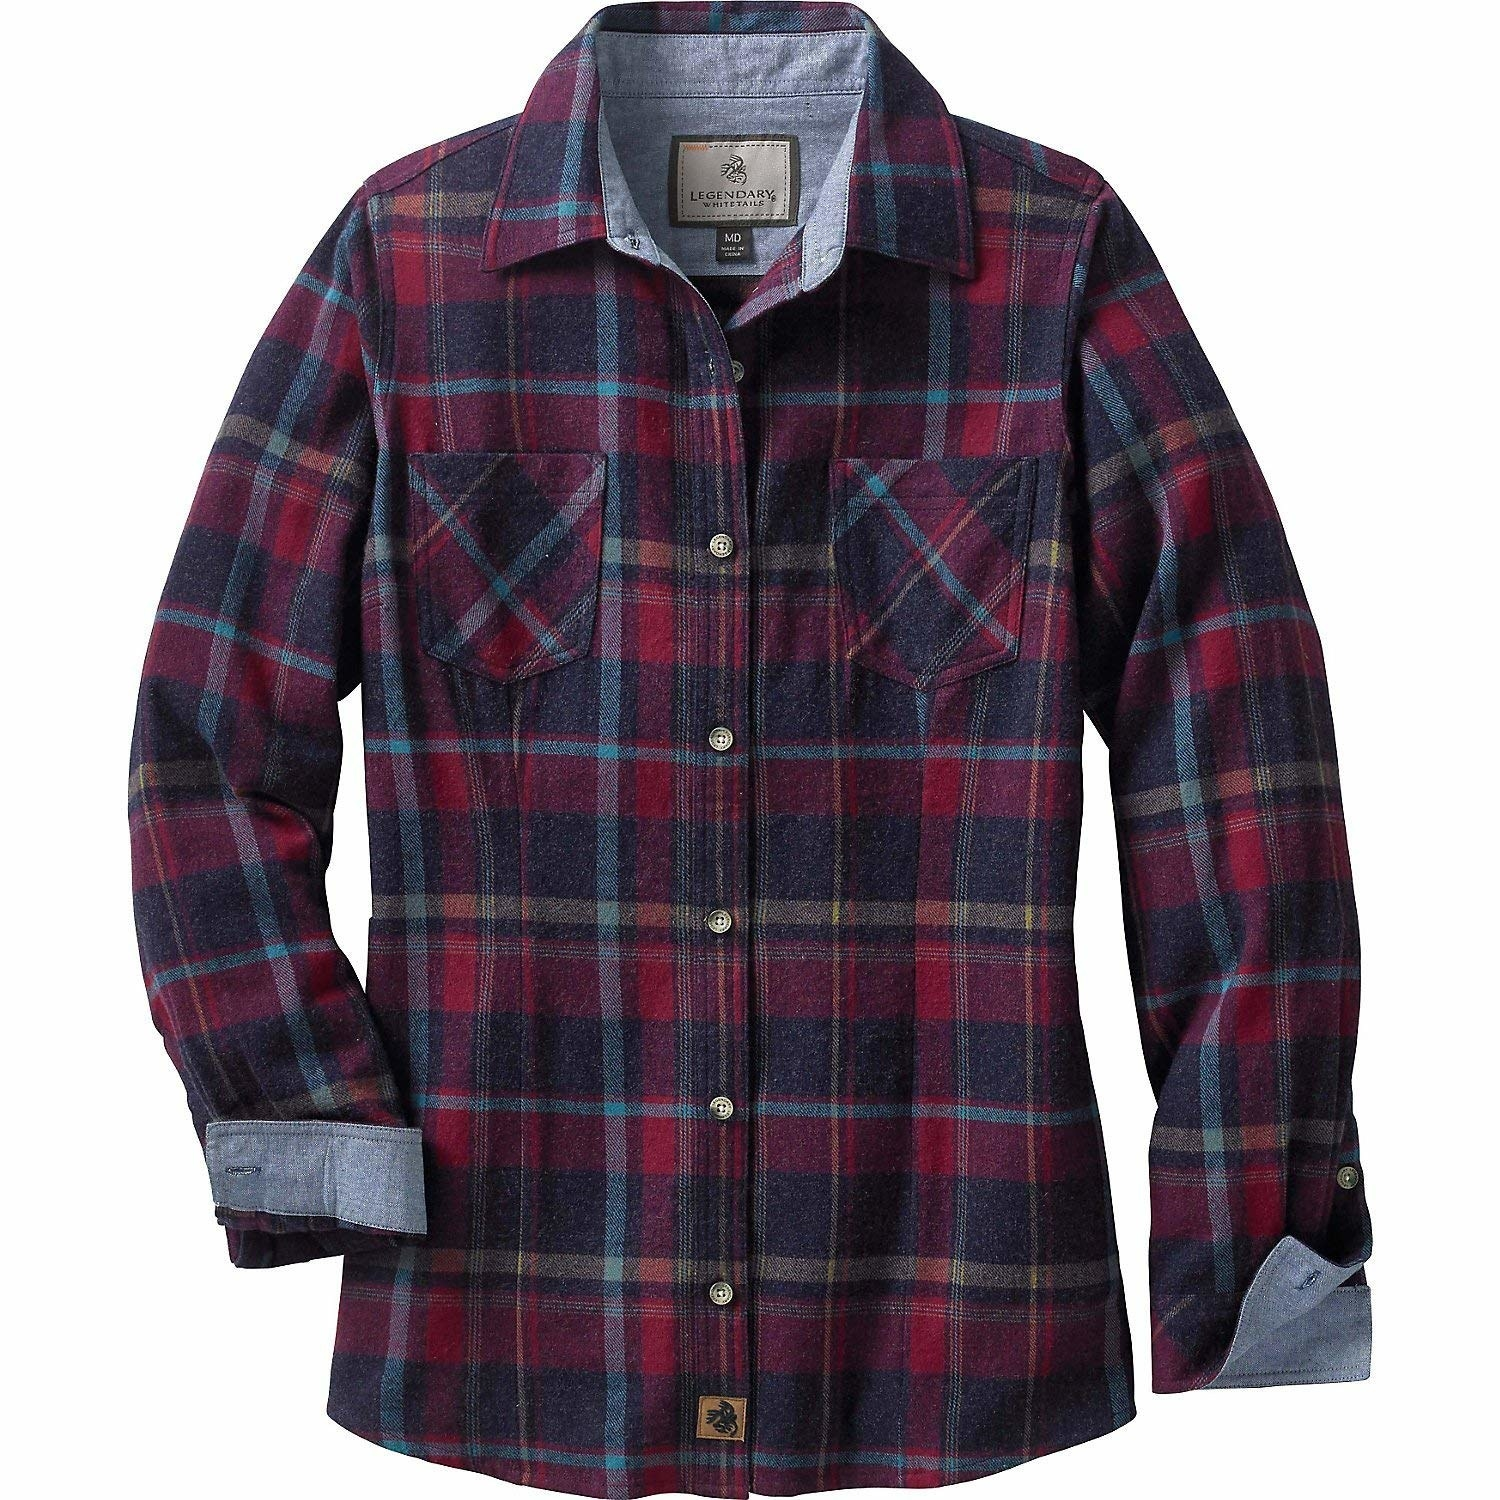 1770e8220c4 A classic, boxy-fit flannel shirt upgraded with chambray lining at the  collar and cuffs.